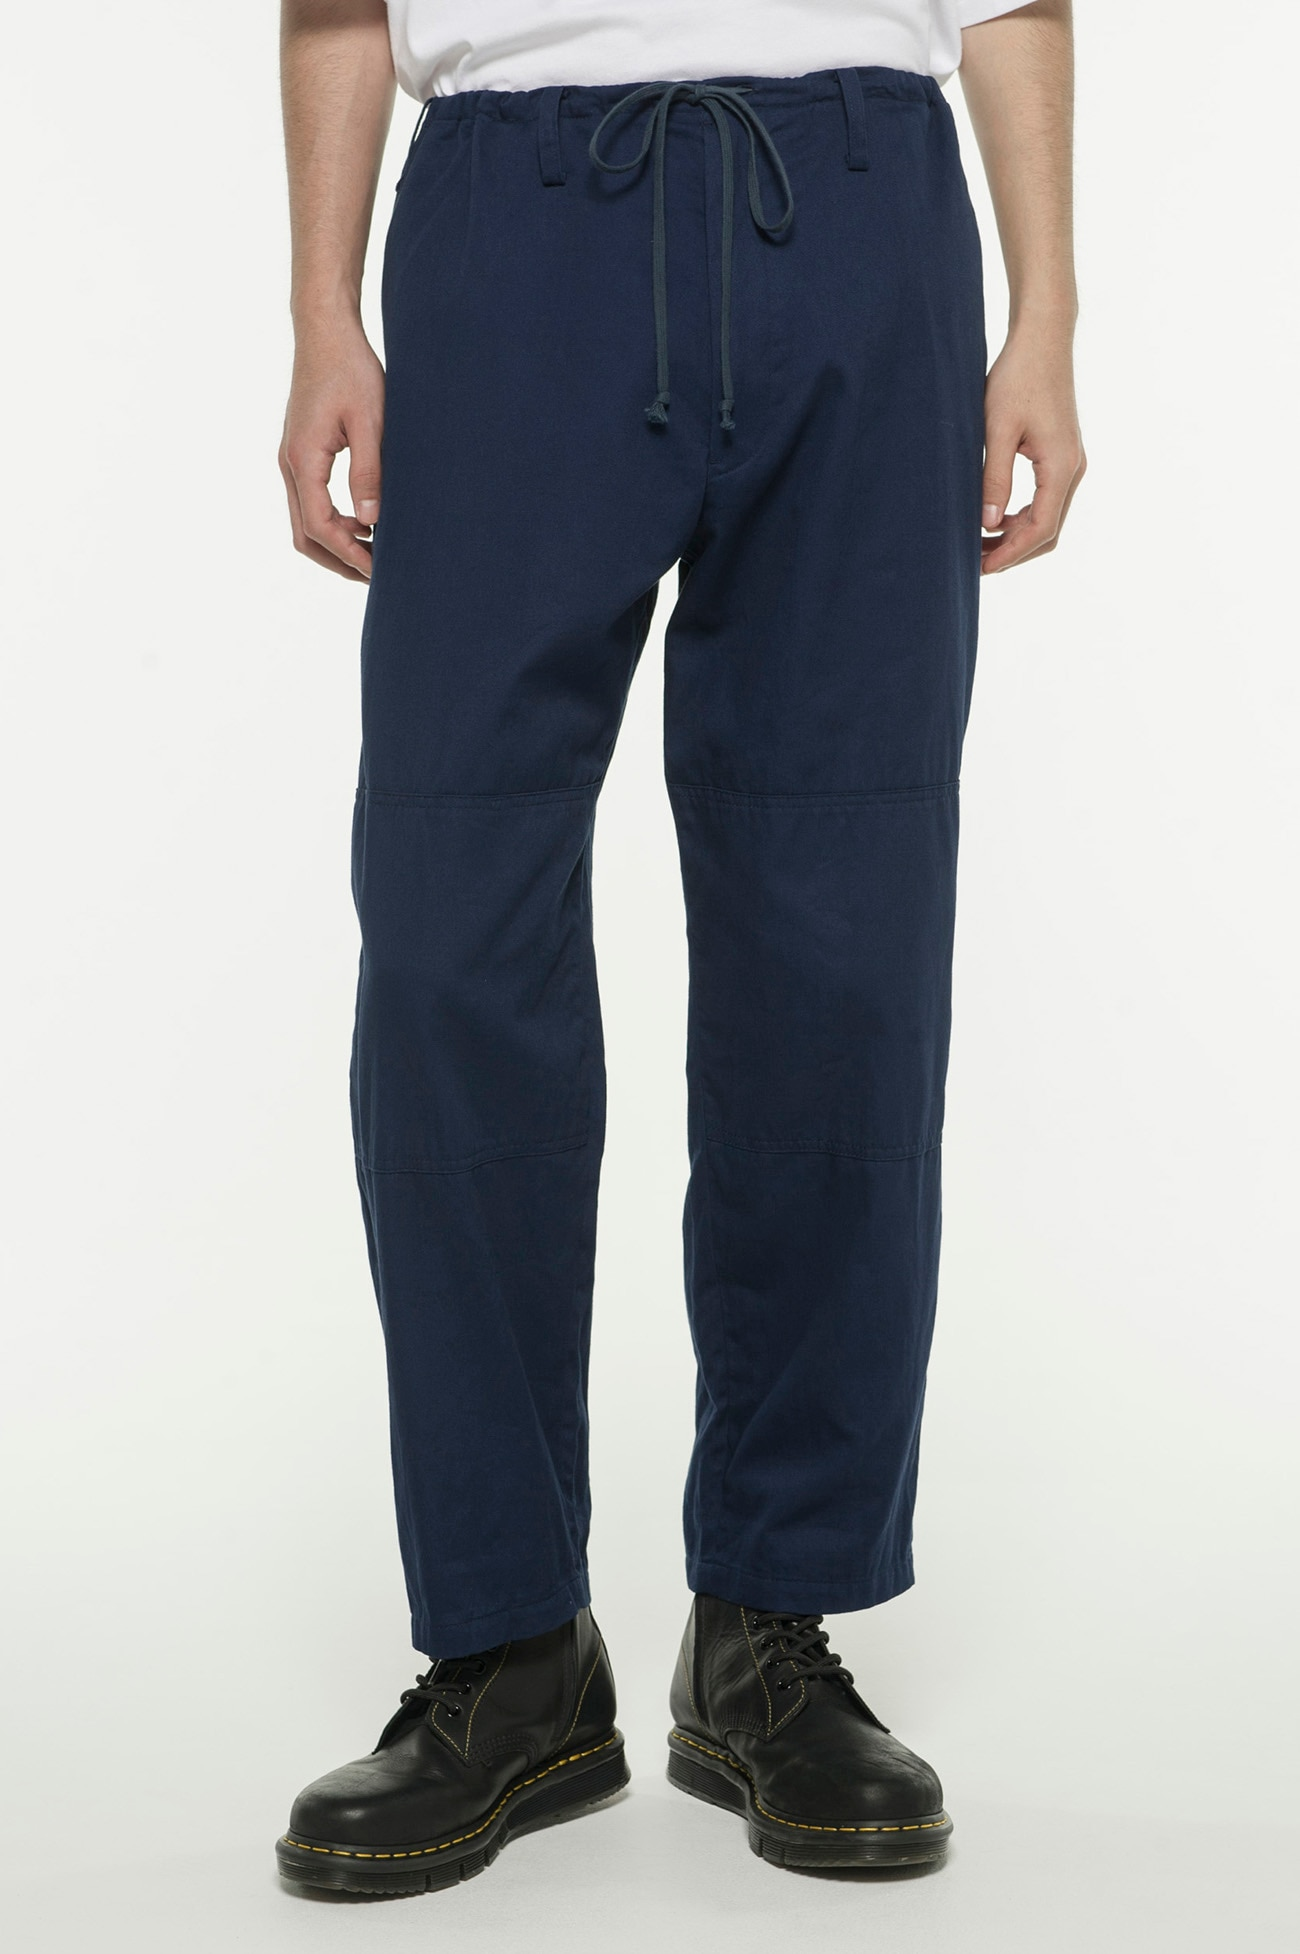 20 / Cotton Twill Waist String Double Knee Pants